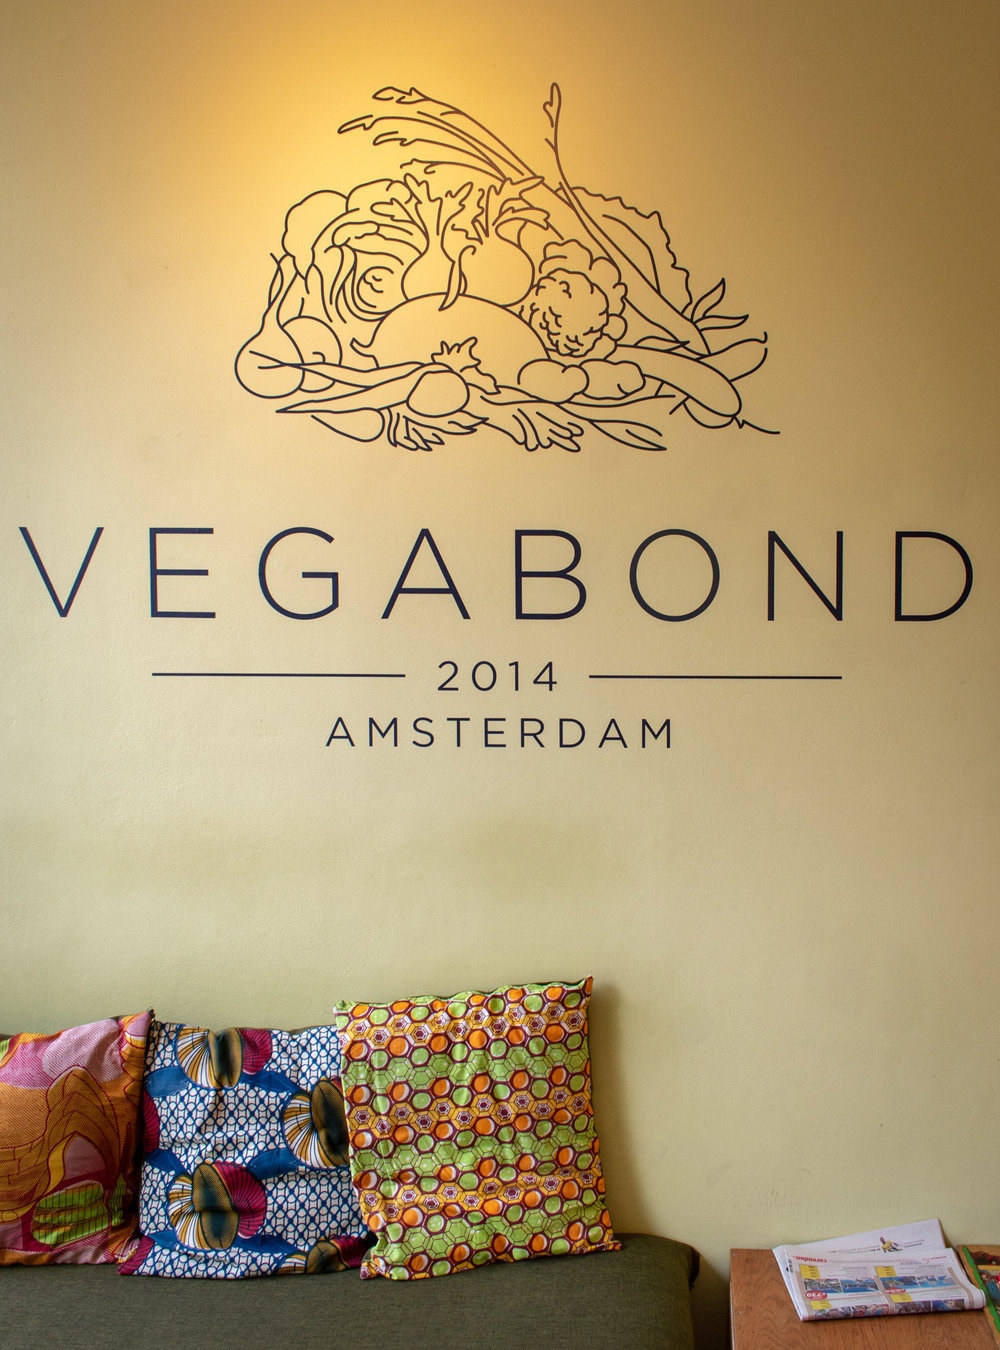 Uprooted-Traveler-Amsterdam-vegabond-vegan-guide-breakfast-markey-netherlands.jpg